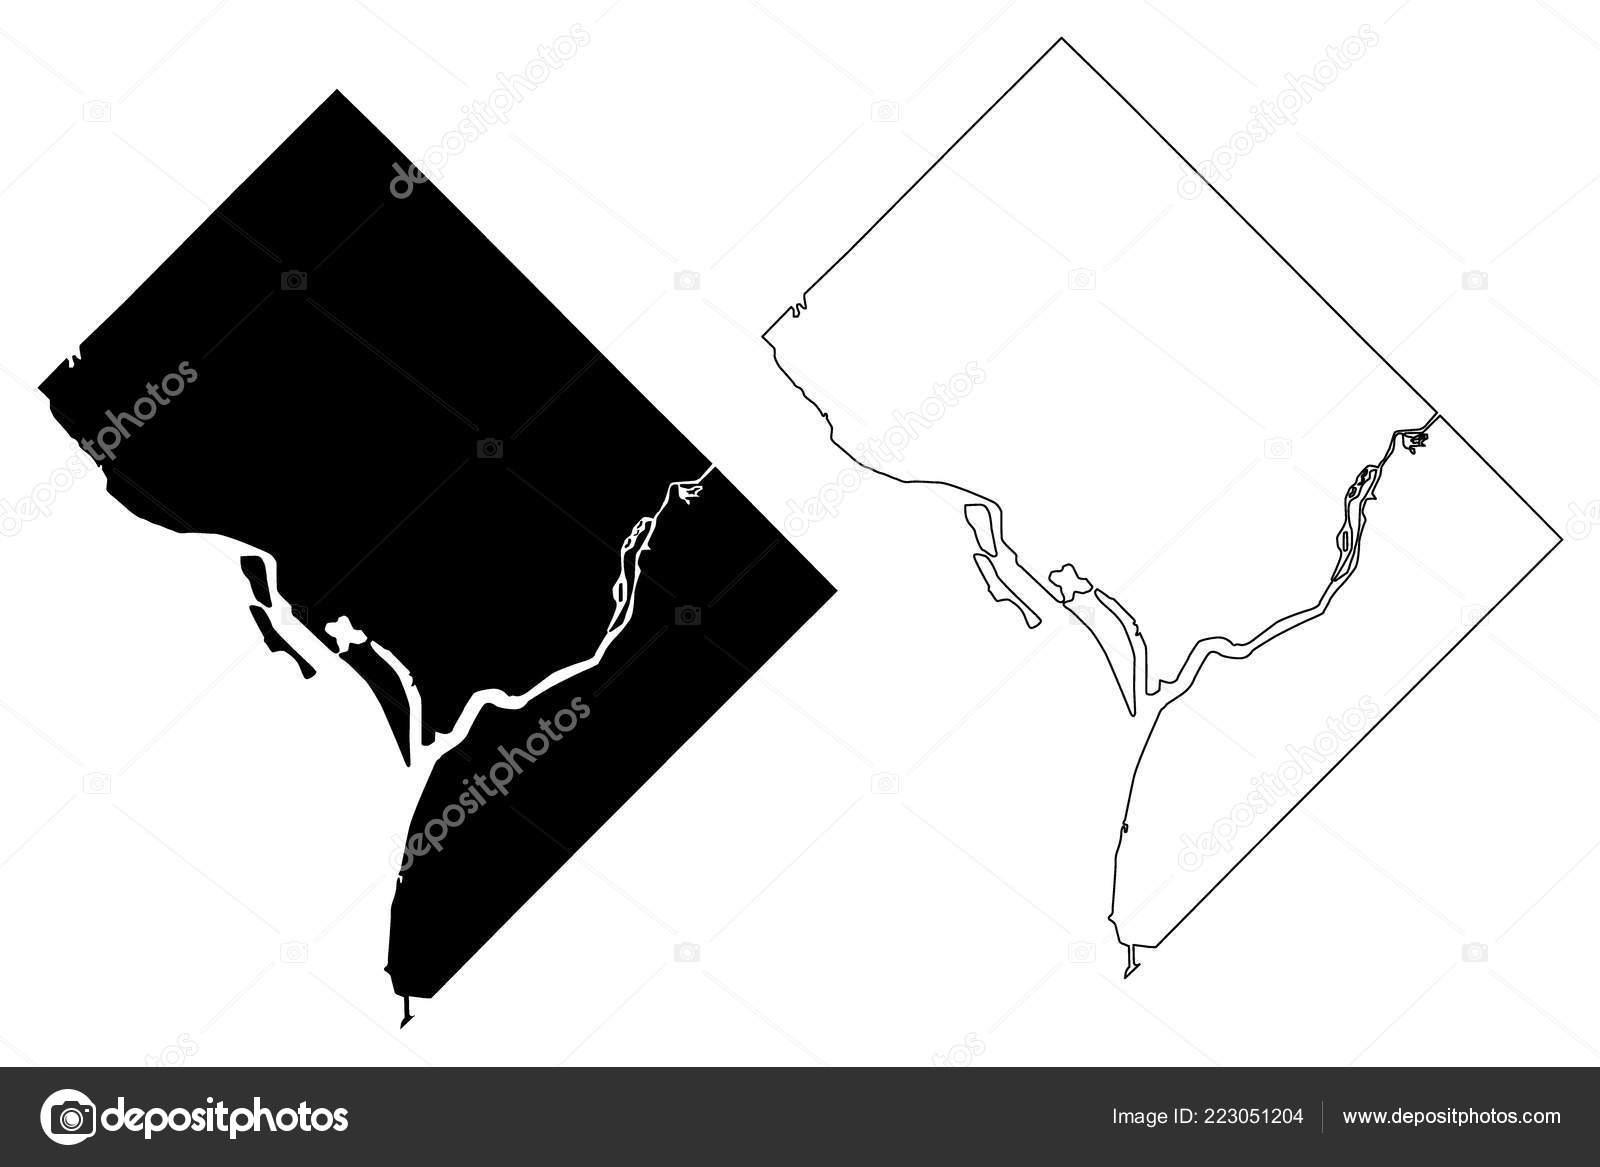 hight resolution of washington city united states cities united states of america usa city map vector illustration scribble sketch city of washington d c district of